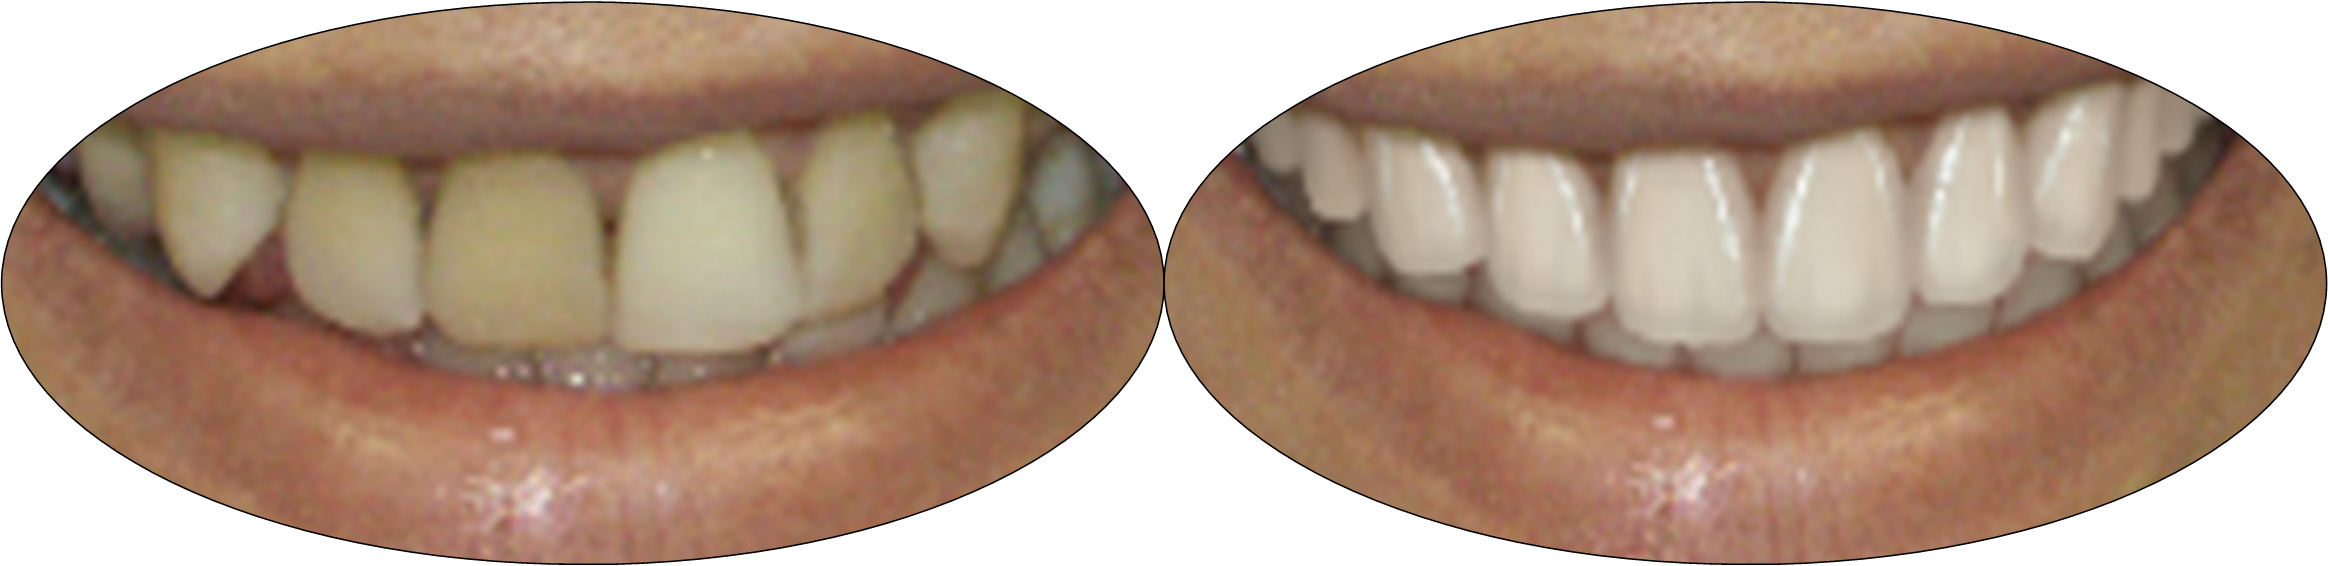 Before and after smile photos of patient with porcelain veneers